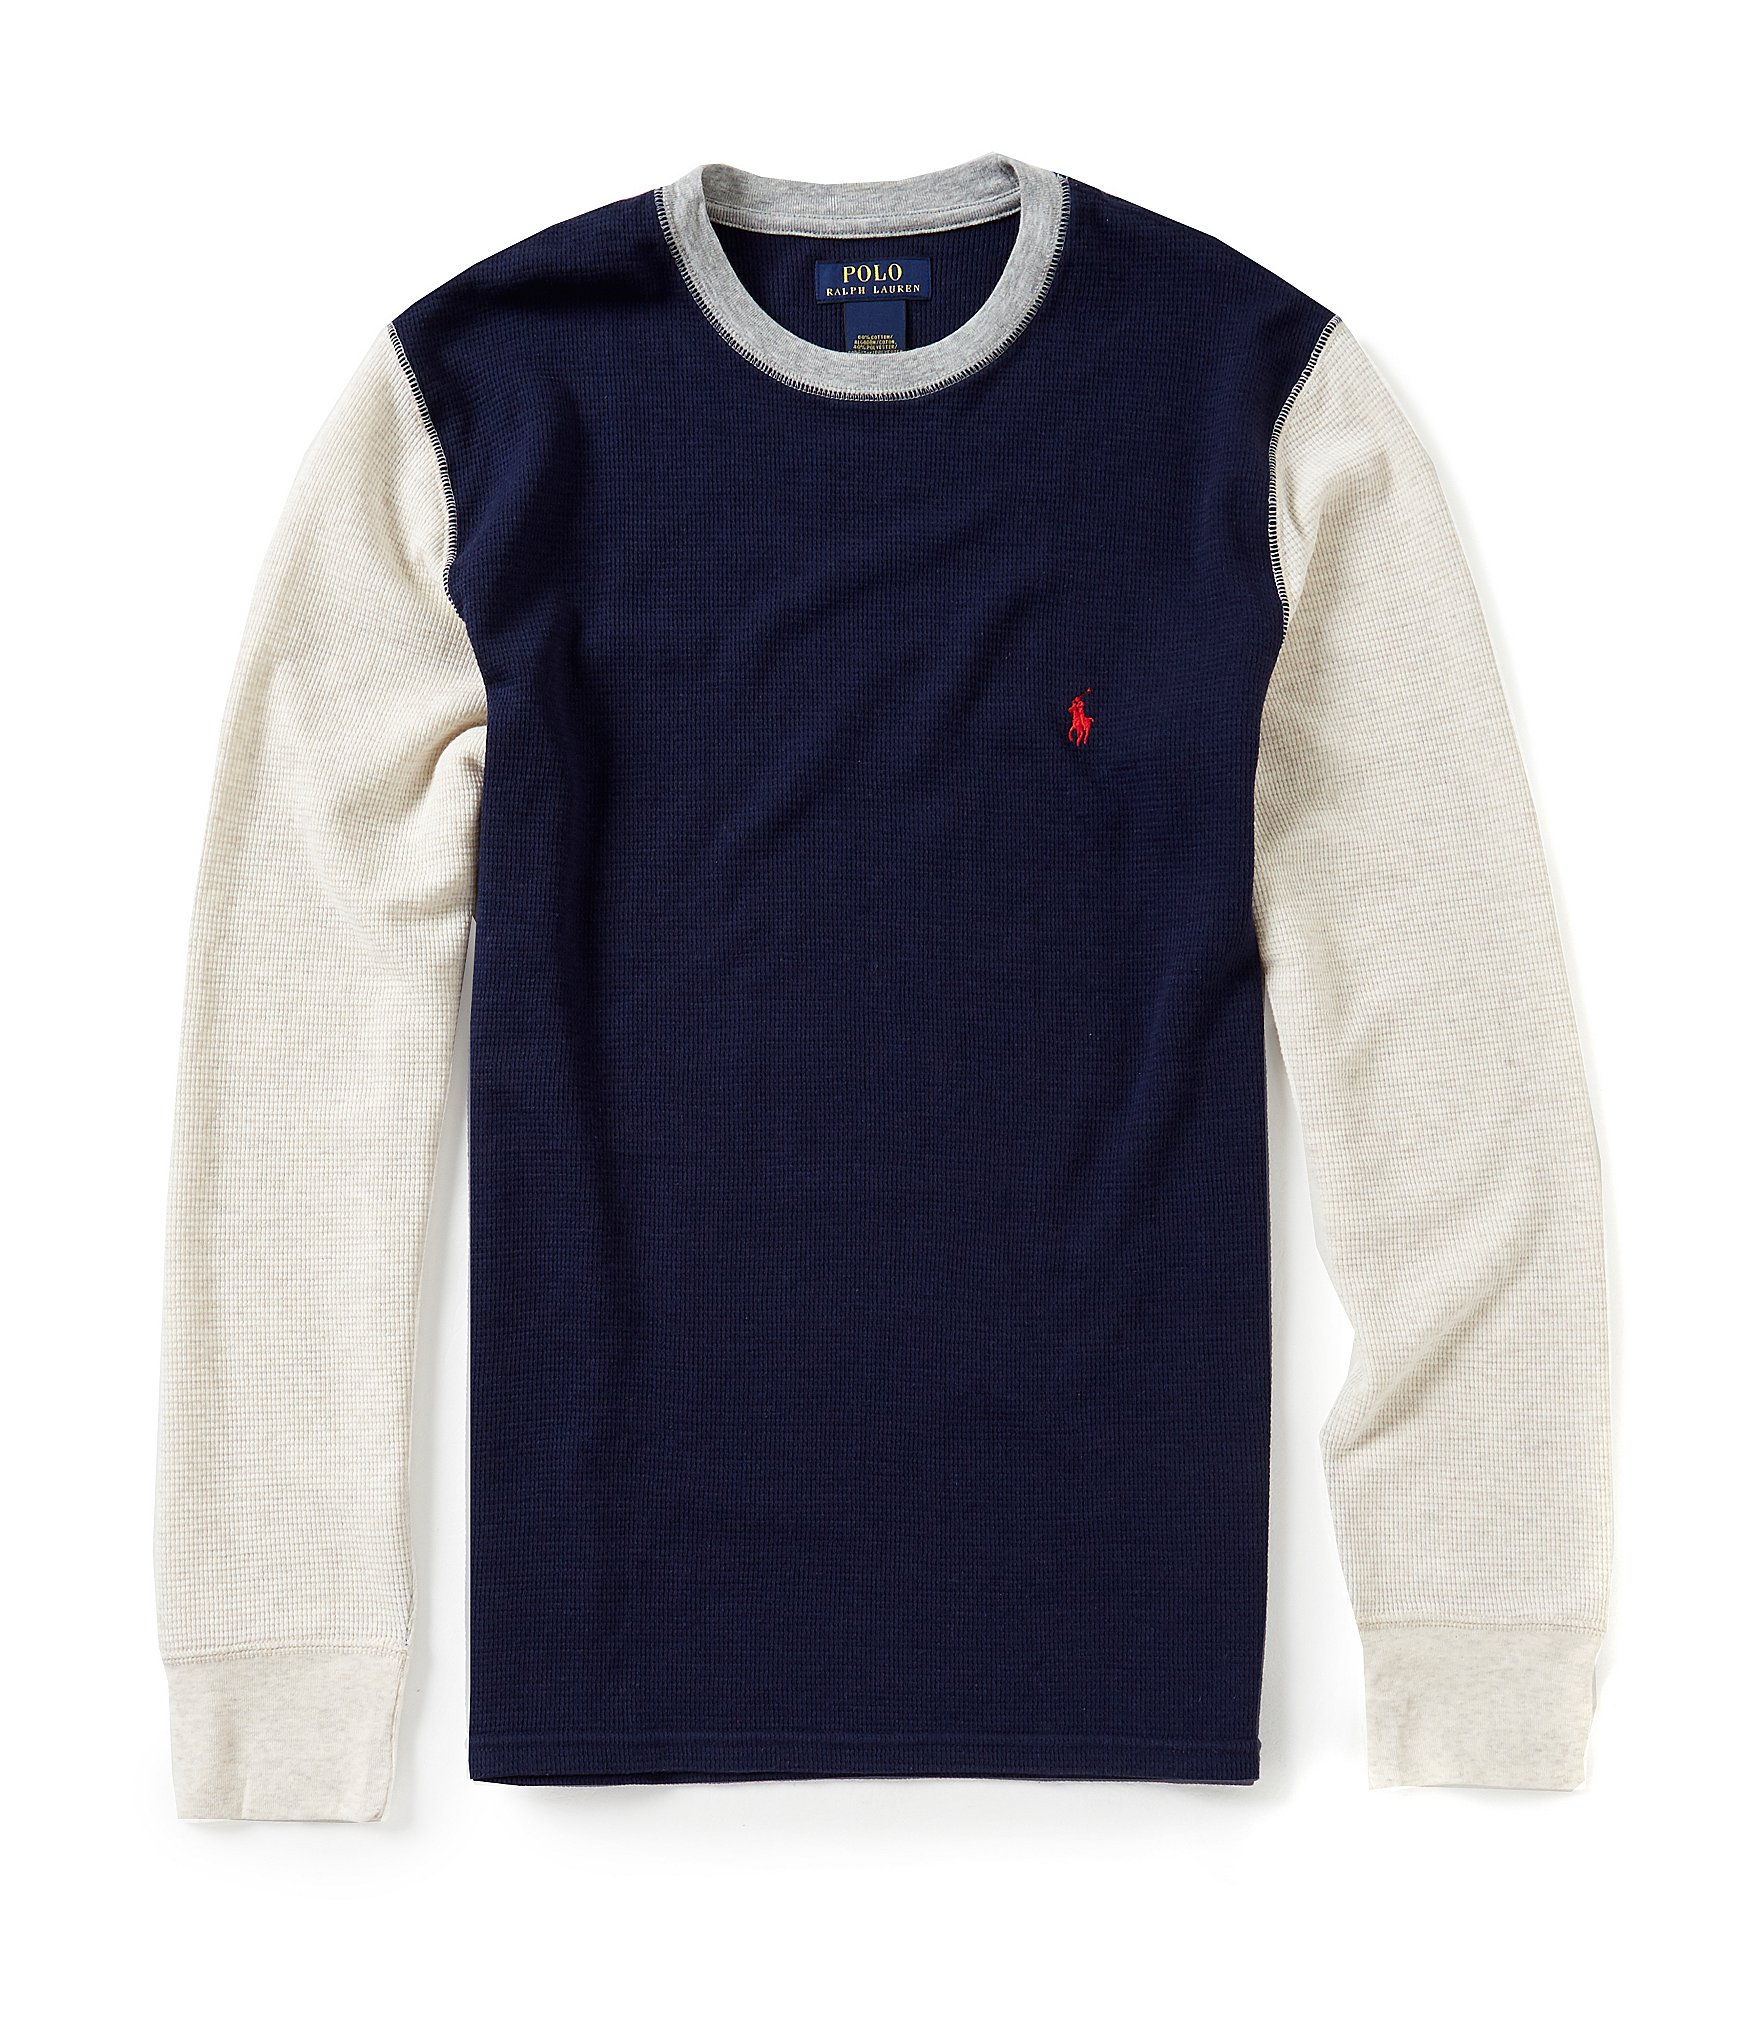 Polo ralph lauren waffle color block long sleeve crew t for Polo color block shirt